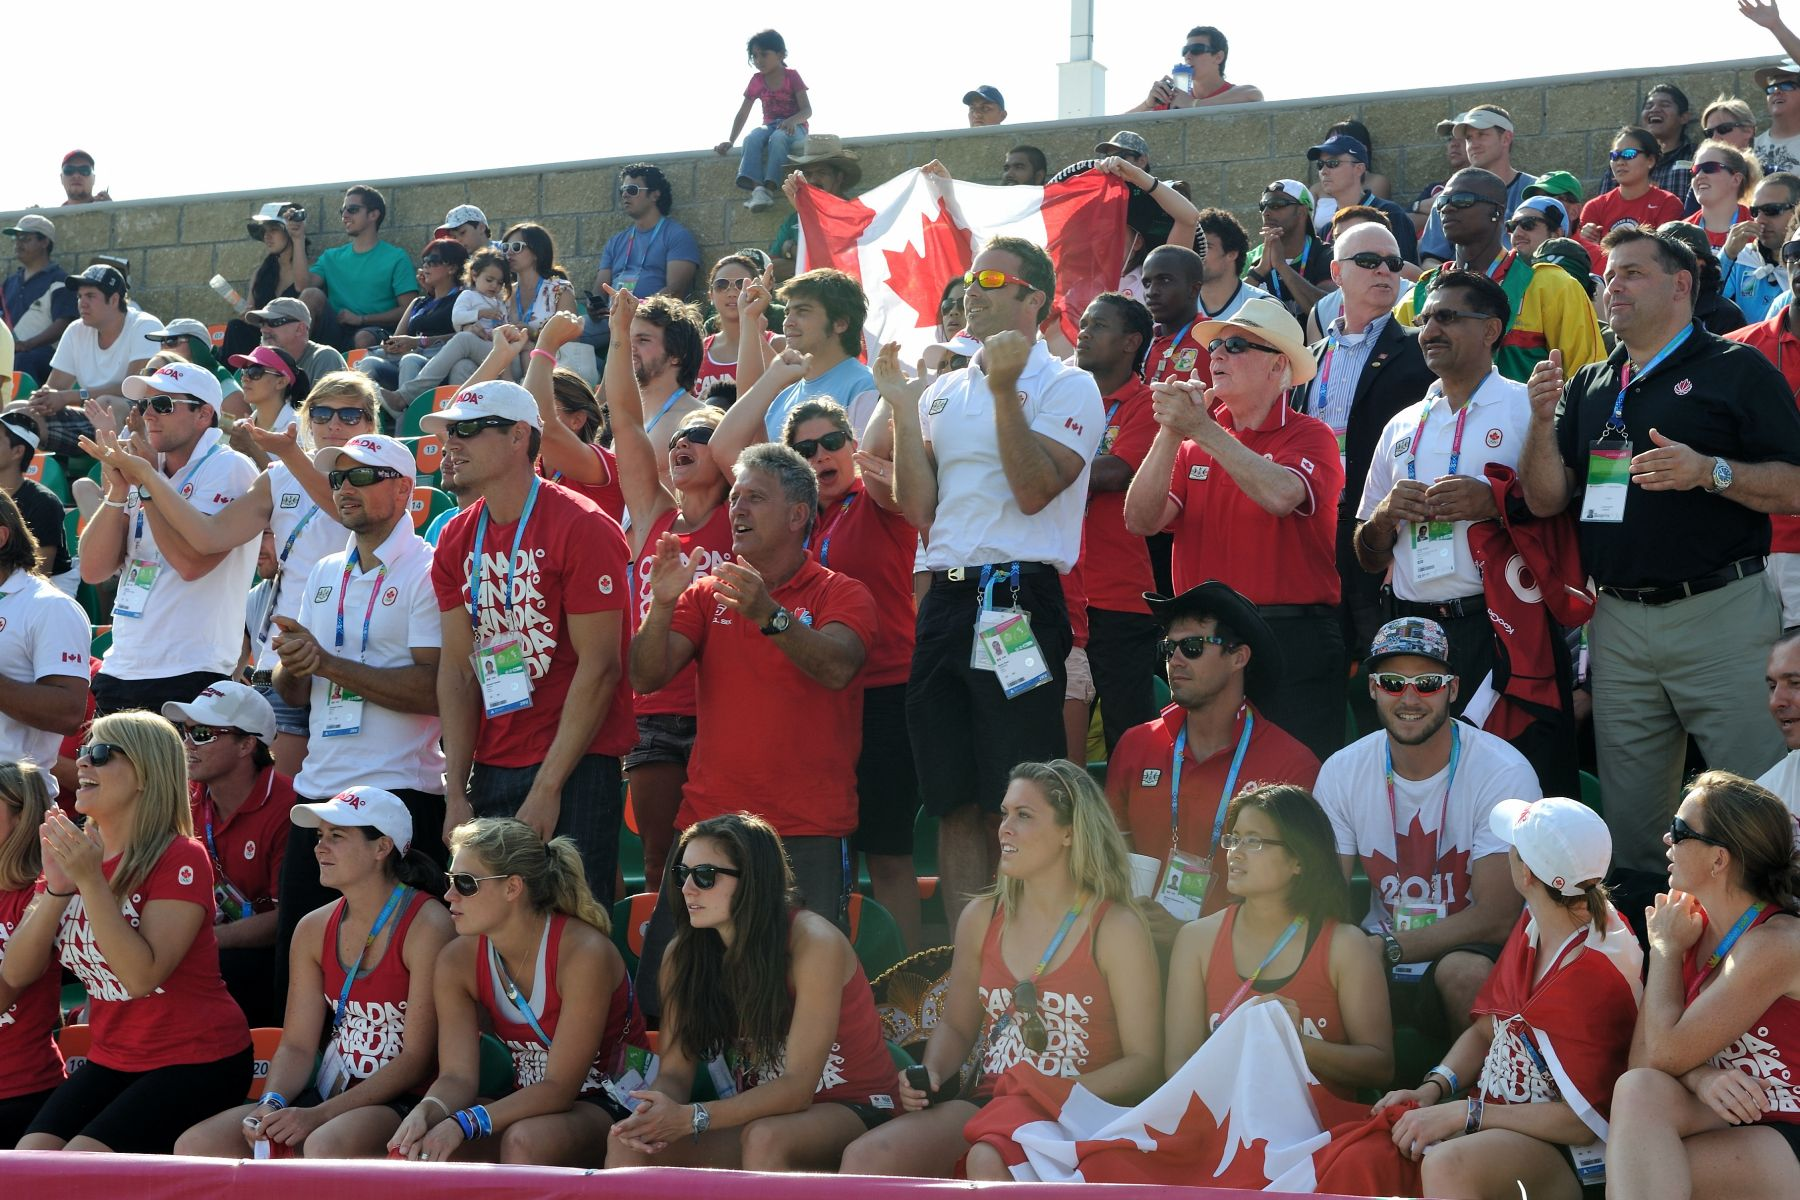 The Governor General sat with Team Canada's family, friends and athletes to cheer on Canada in winning the gold medal.